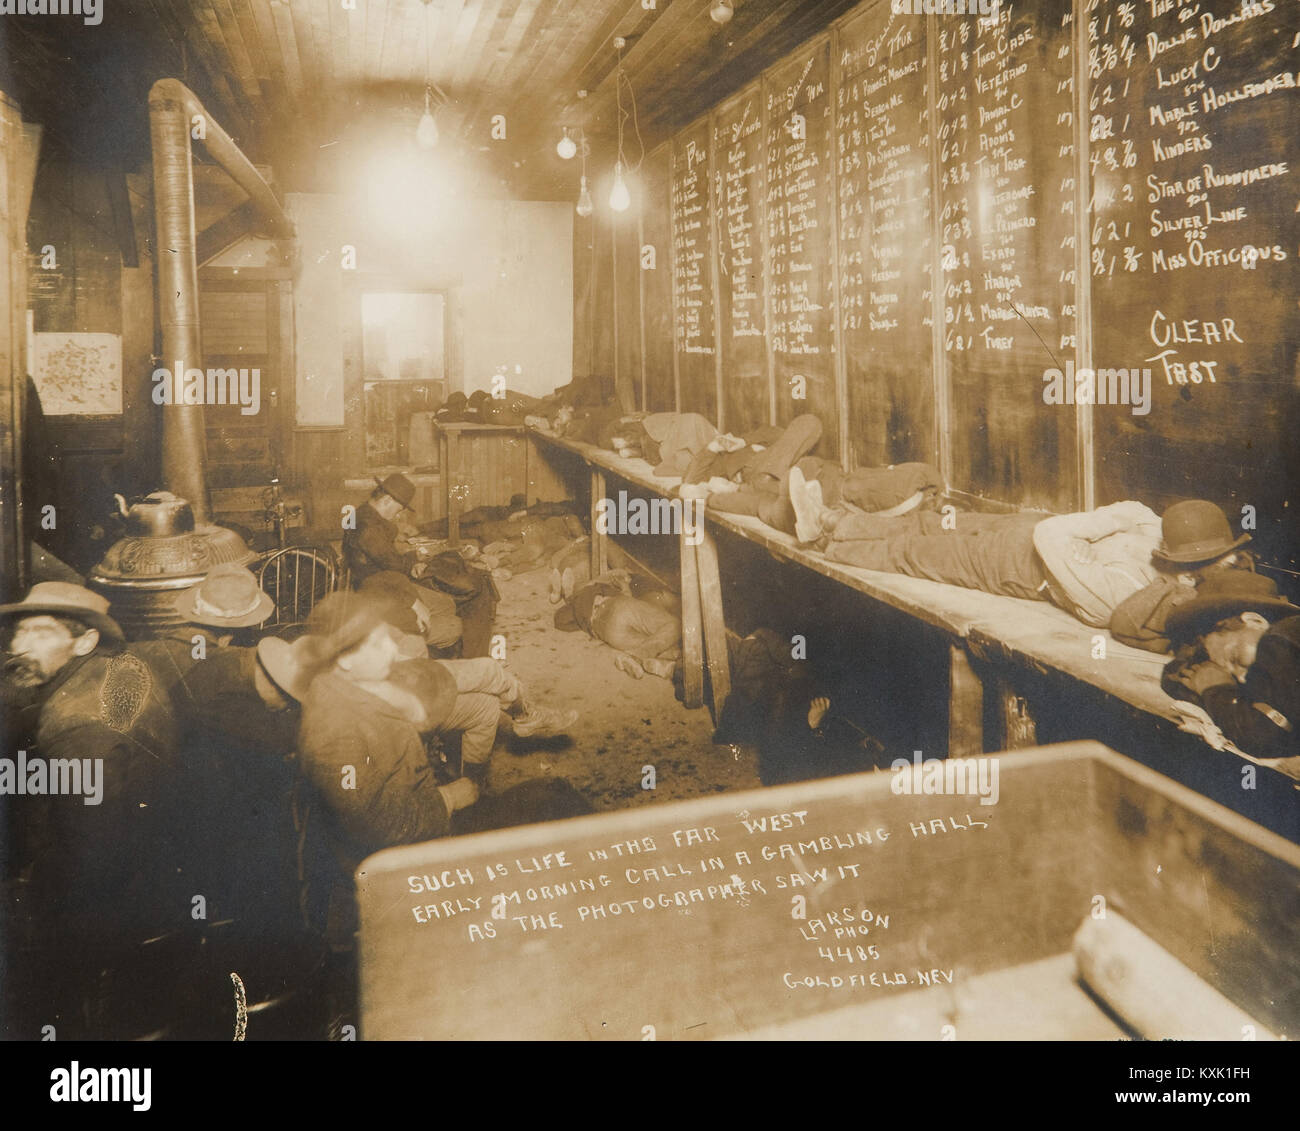 Gambling Hall Photograph -'Such Is Life In The Far West / Early Morning Call In A Gambling Hall - Stock Image